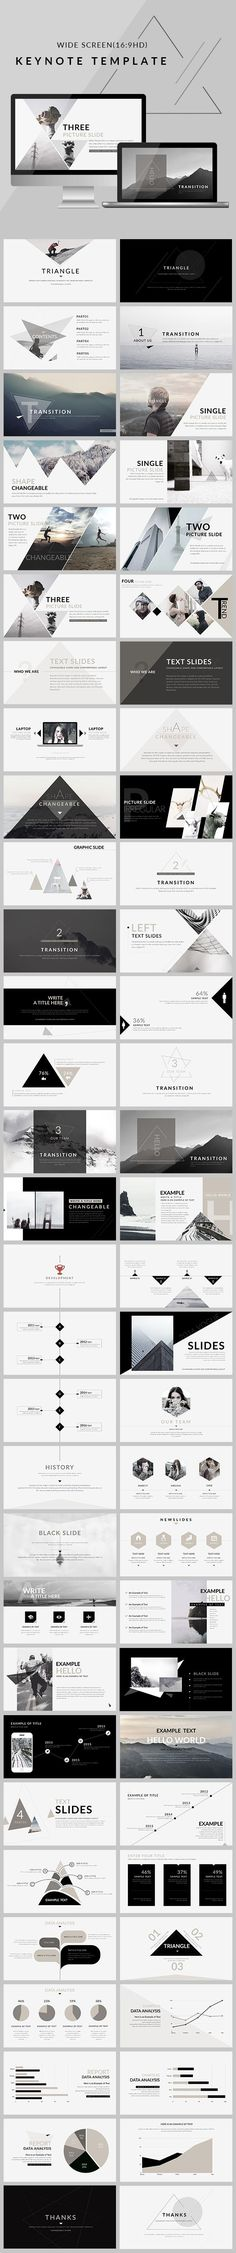 Triangle - Clean trend Keynote Template - Keynote Creative Presentation Template by Layout Design, Graphisches Design, Logo Design, Design Agency, Creative Design, Interface Design, Portfolio Design, Portfolio Layout, Portfolio Examples